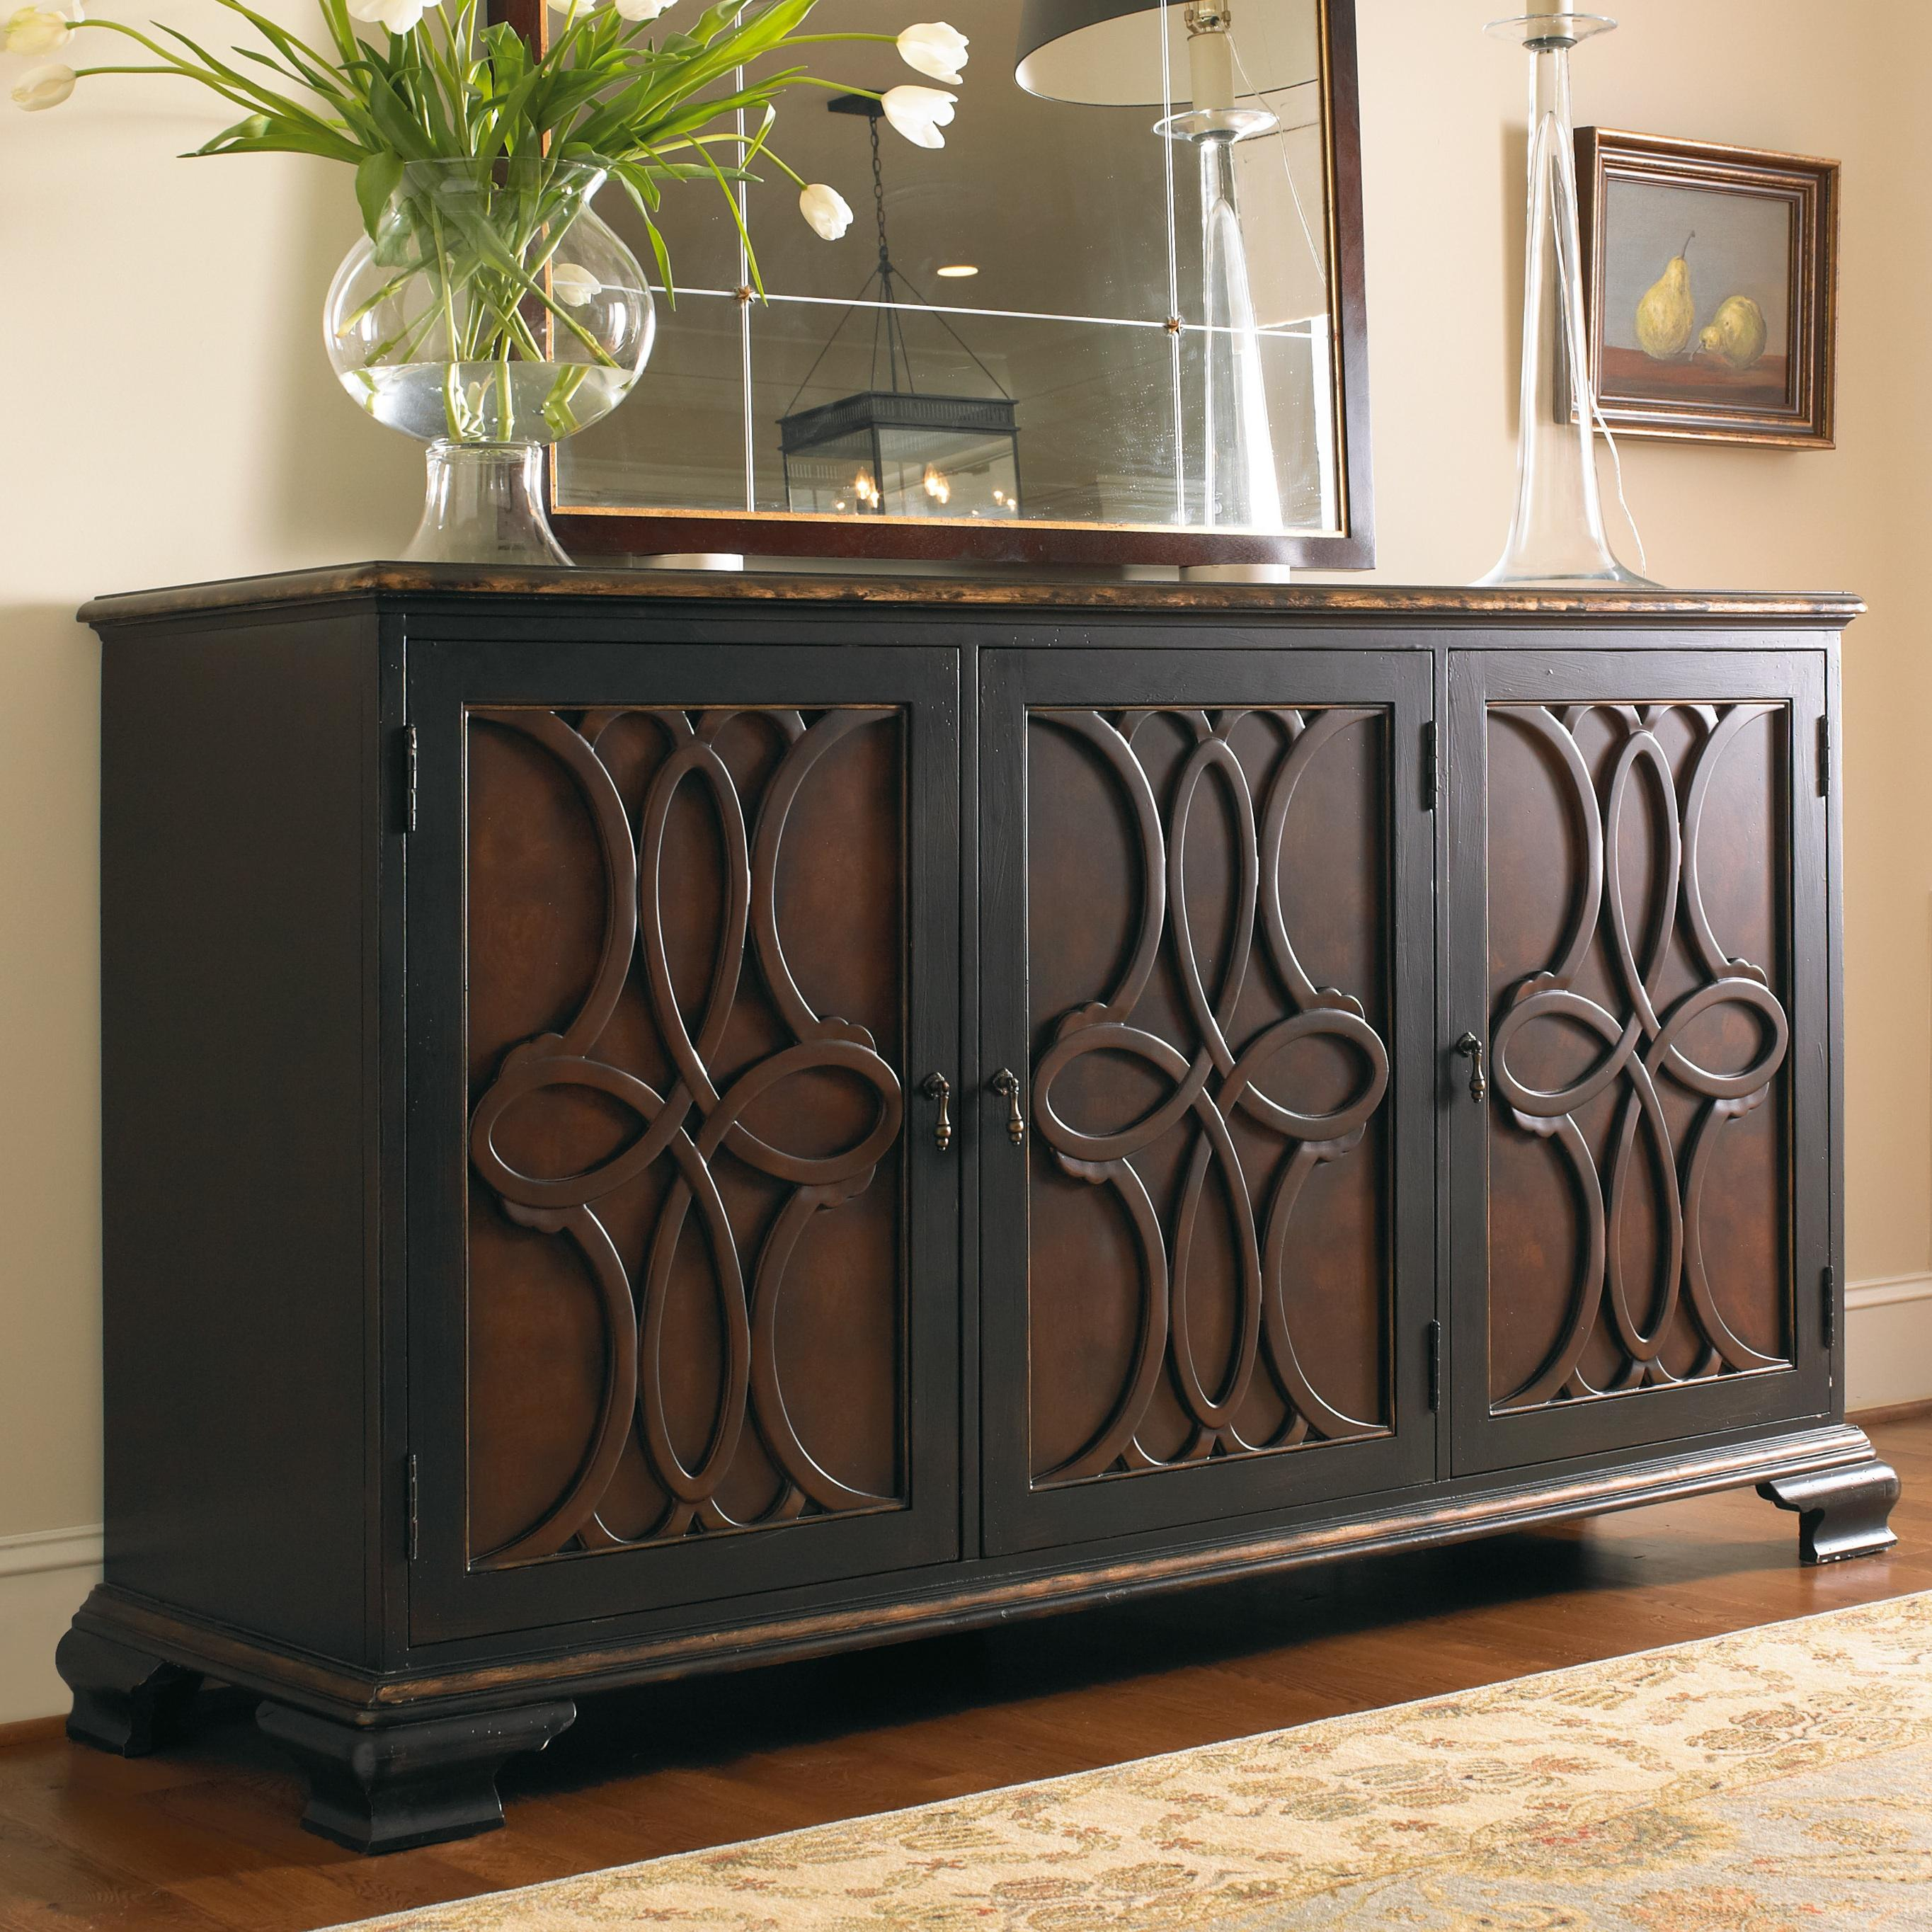 Hamilton Home Living Room Accents Two Tone Credenza With Raised Applique Door